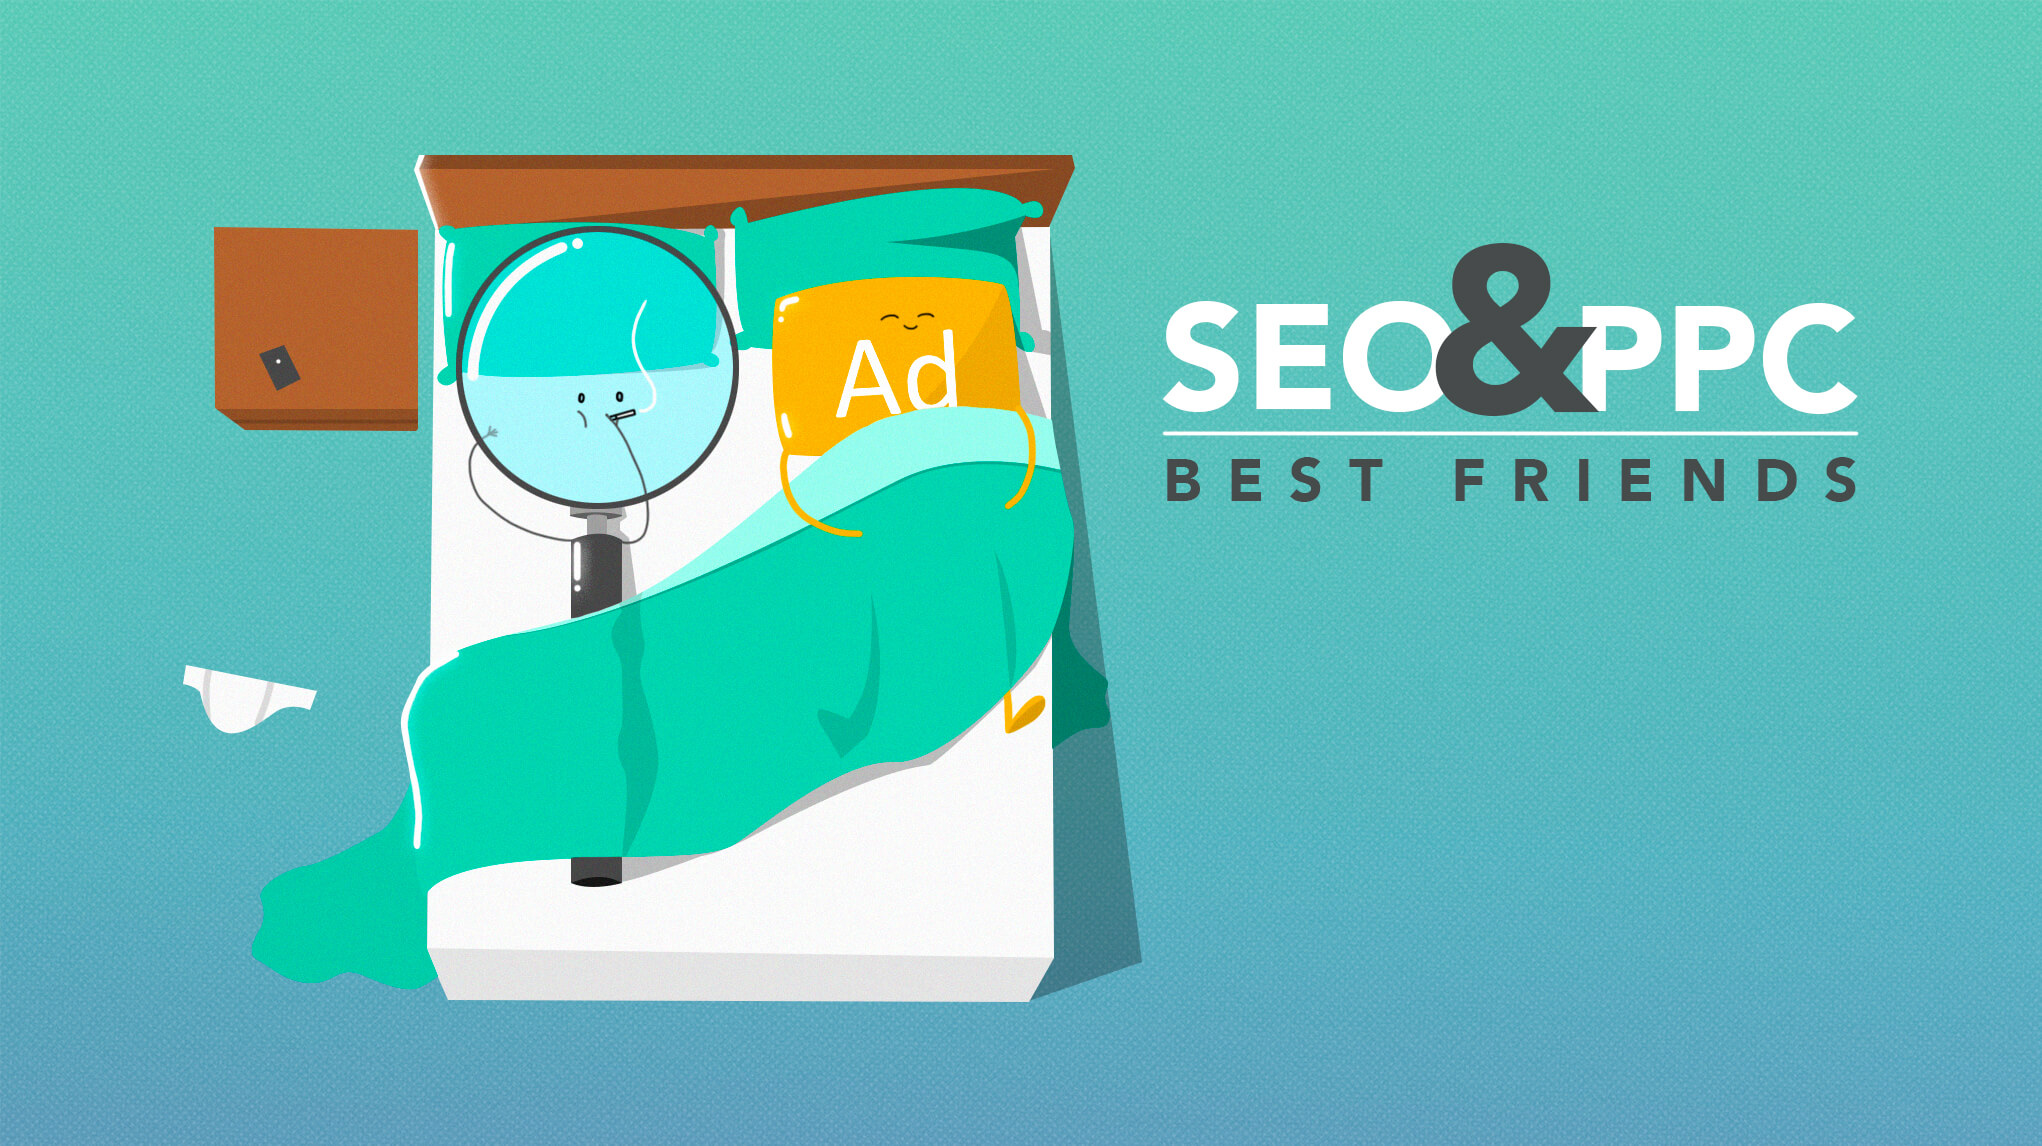 SEO and PPC Best Friends: 7 Ways to Uncover and Integrate Your Data